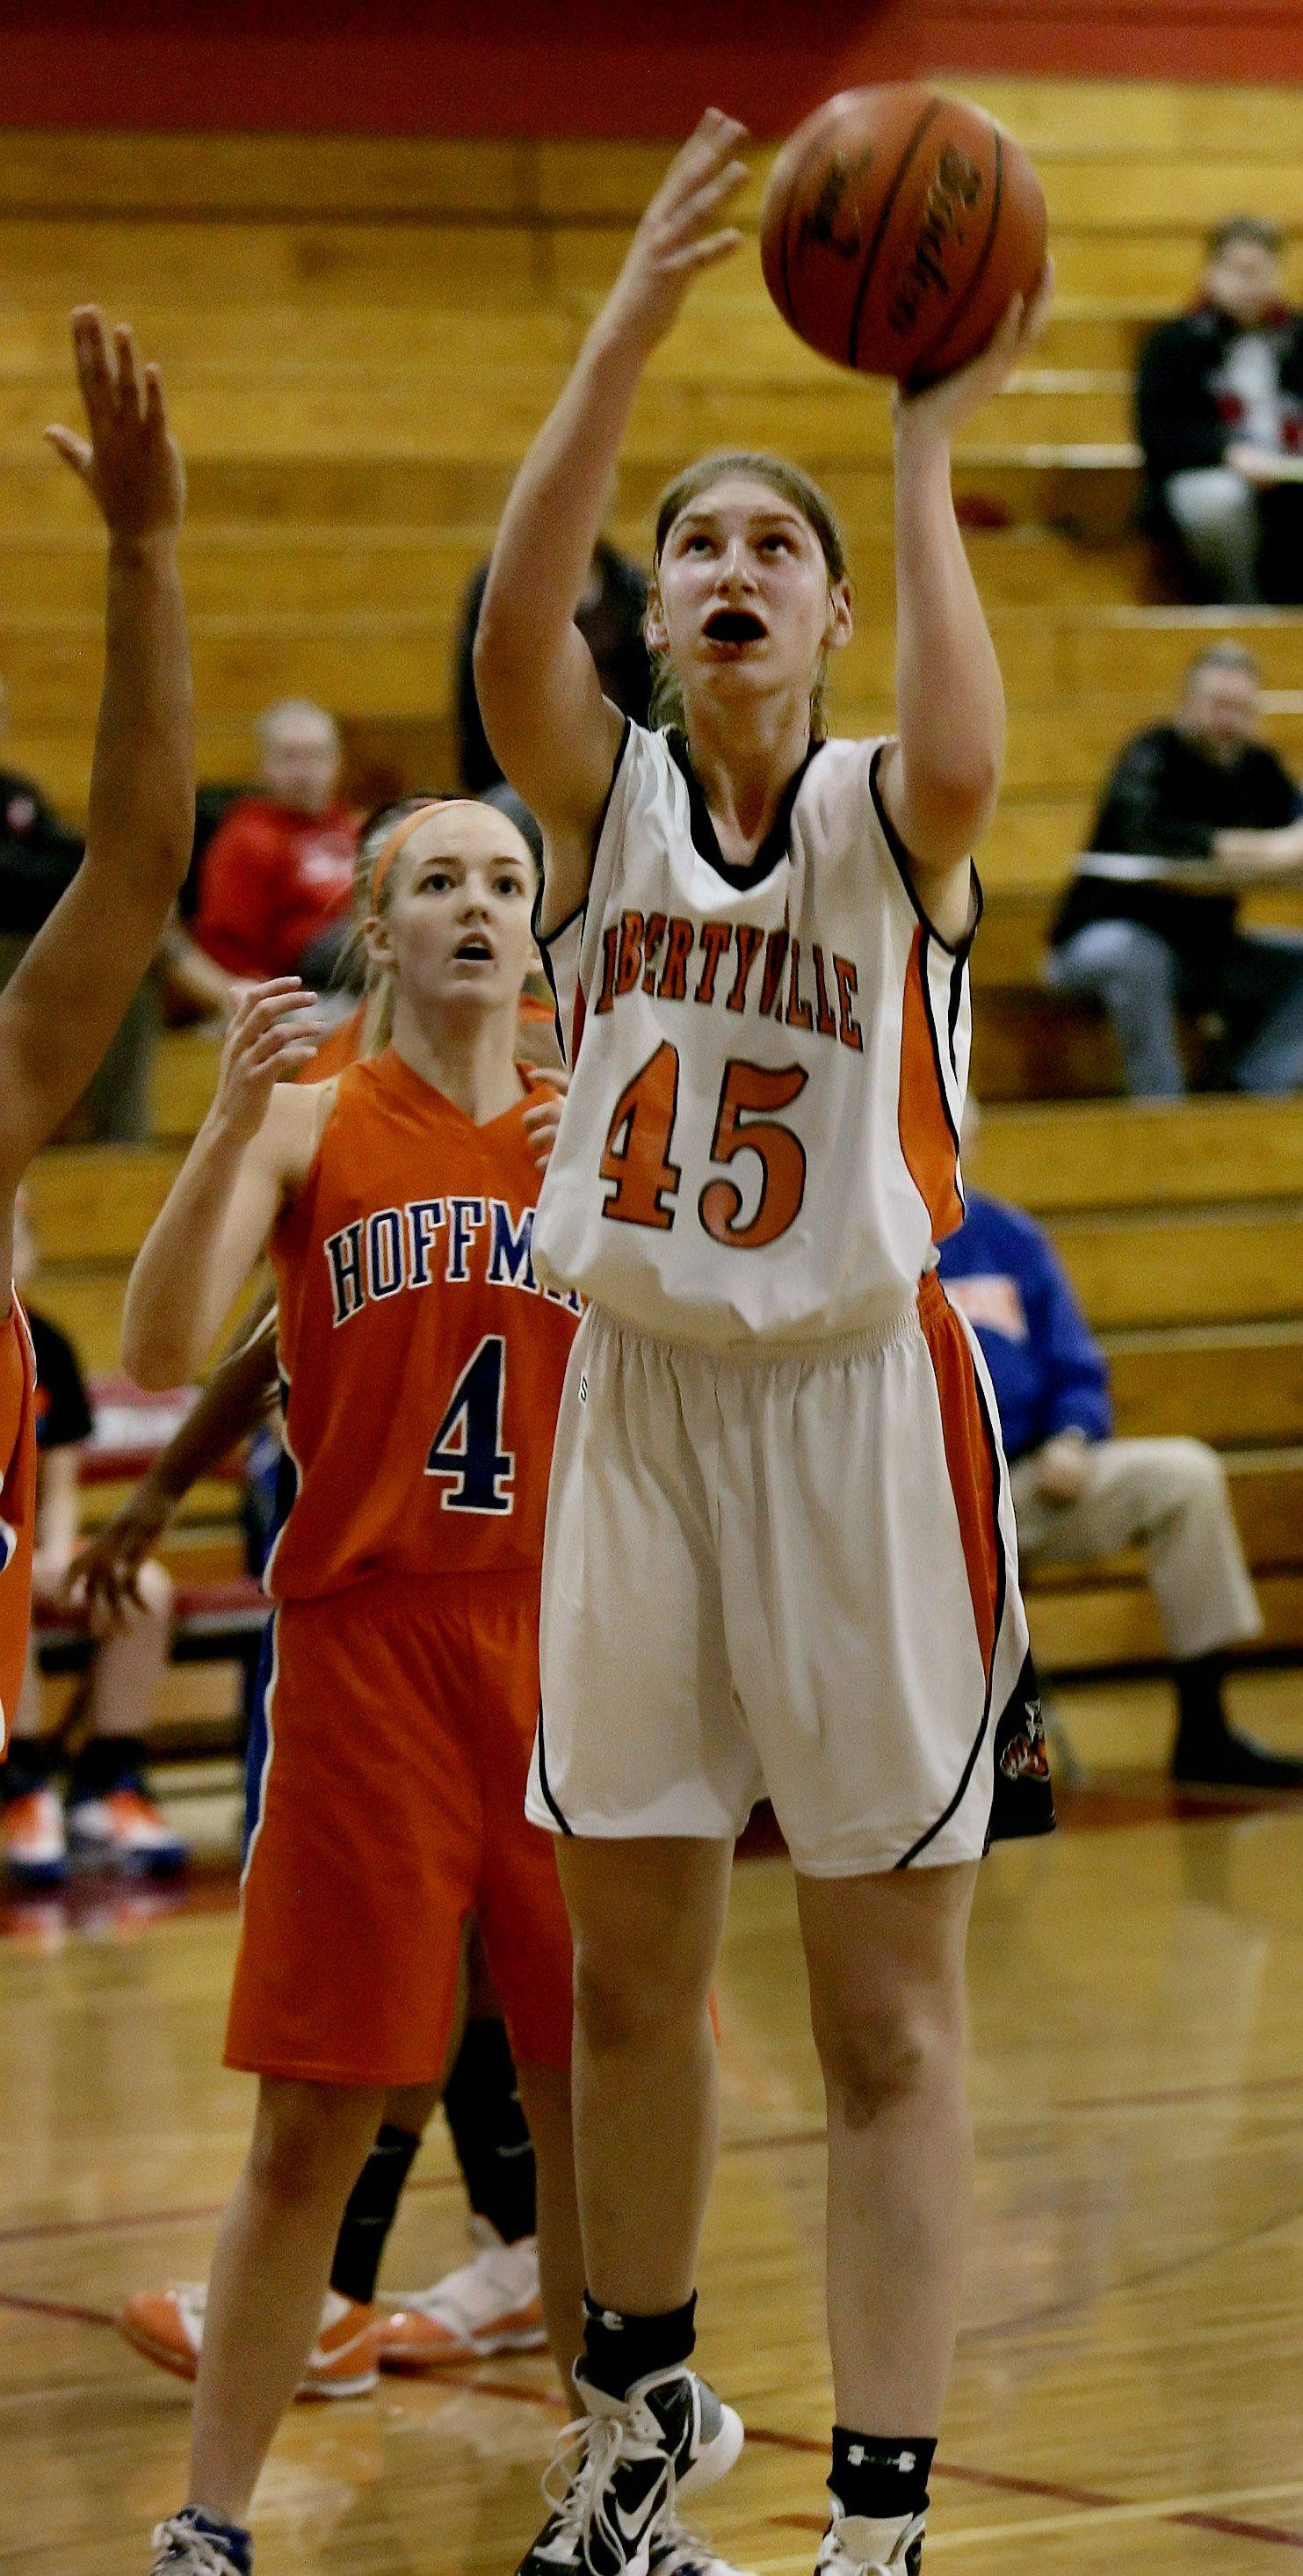 Libertyville center Nicole Kruckman goes up for a layup against Hoffman Estates.